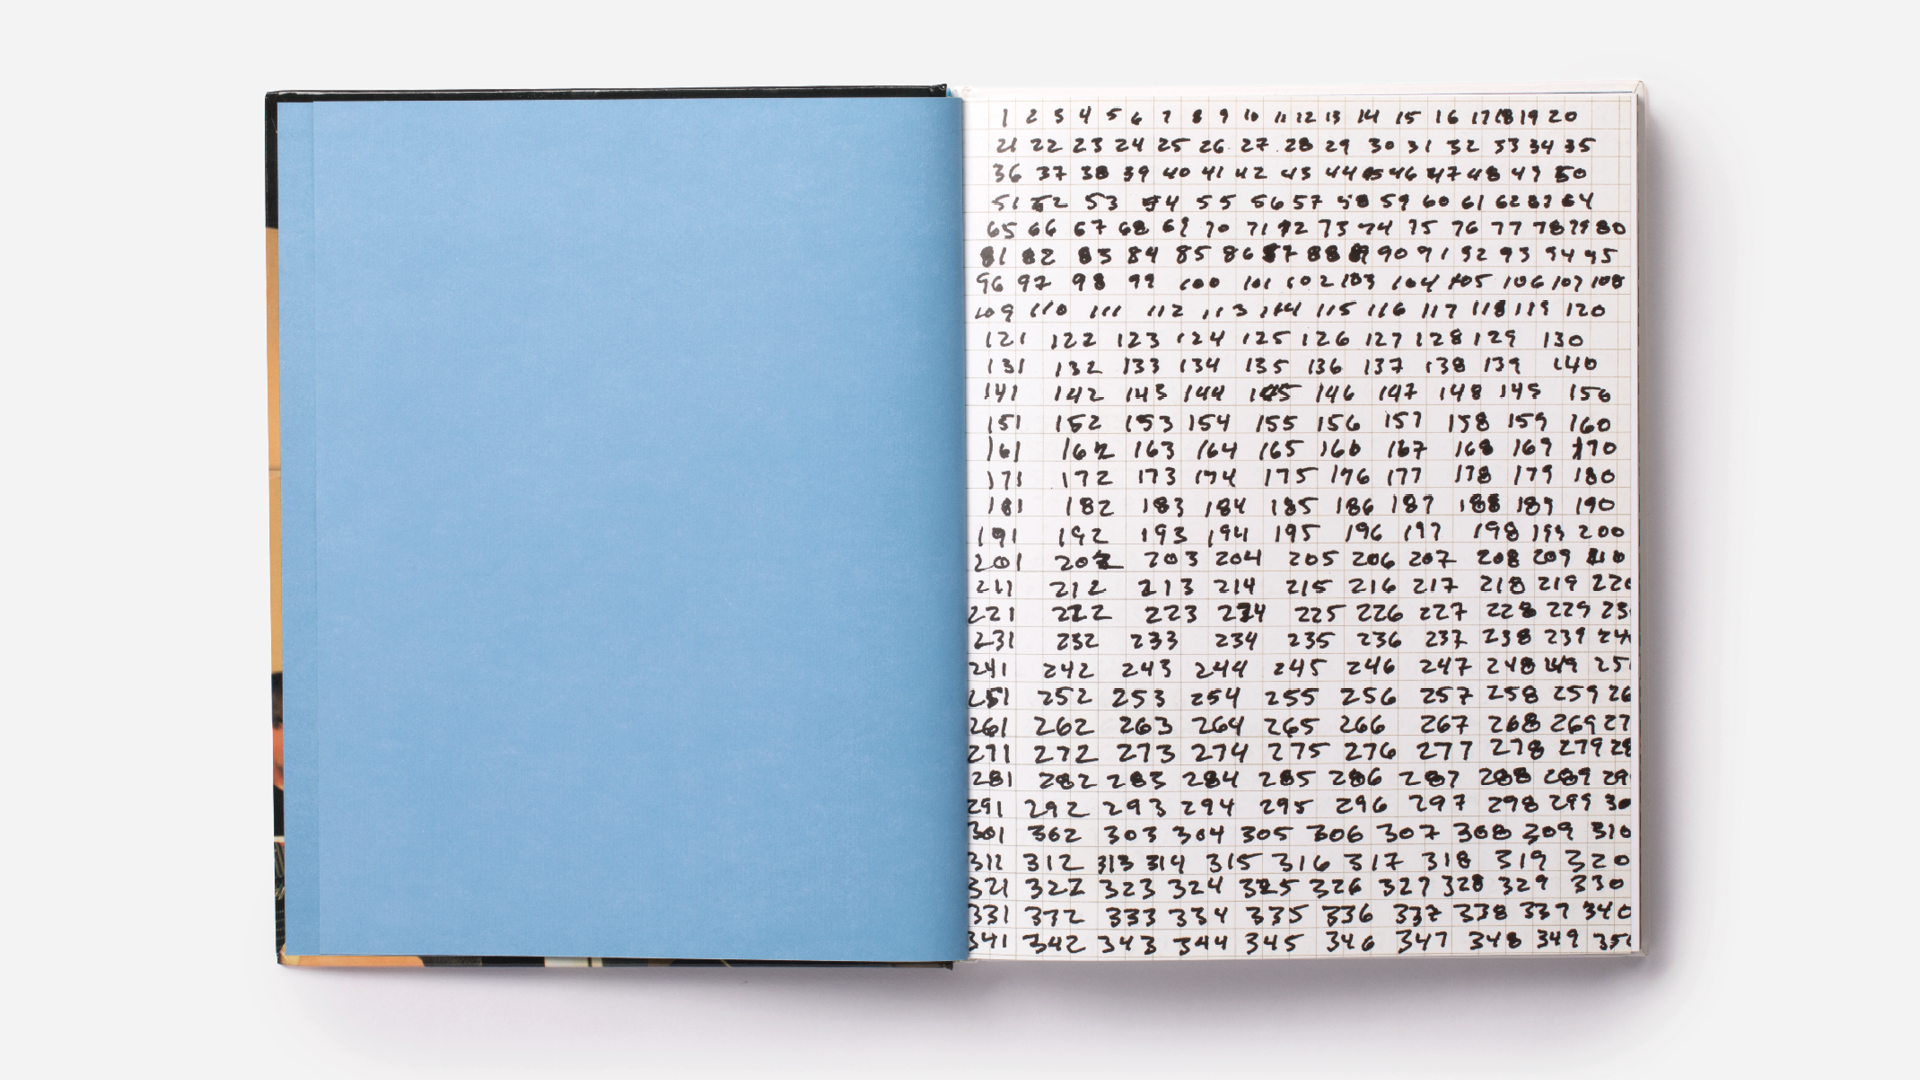 WILCO-BOOK-PAGES2.png